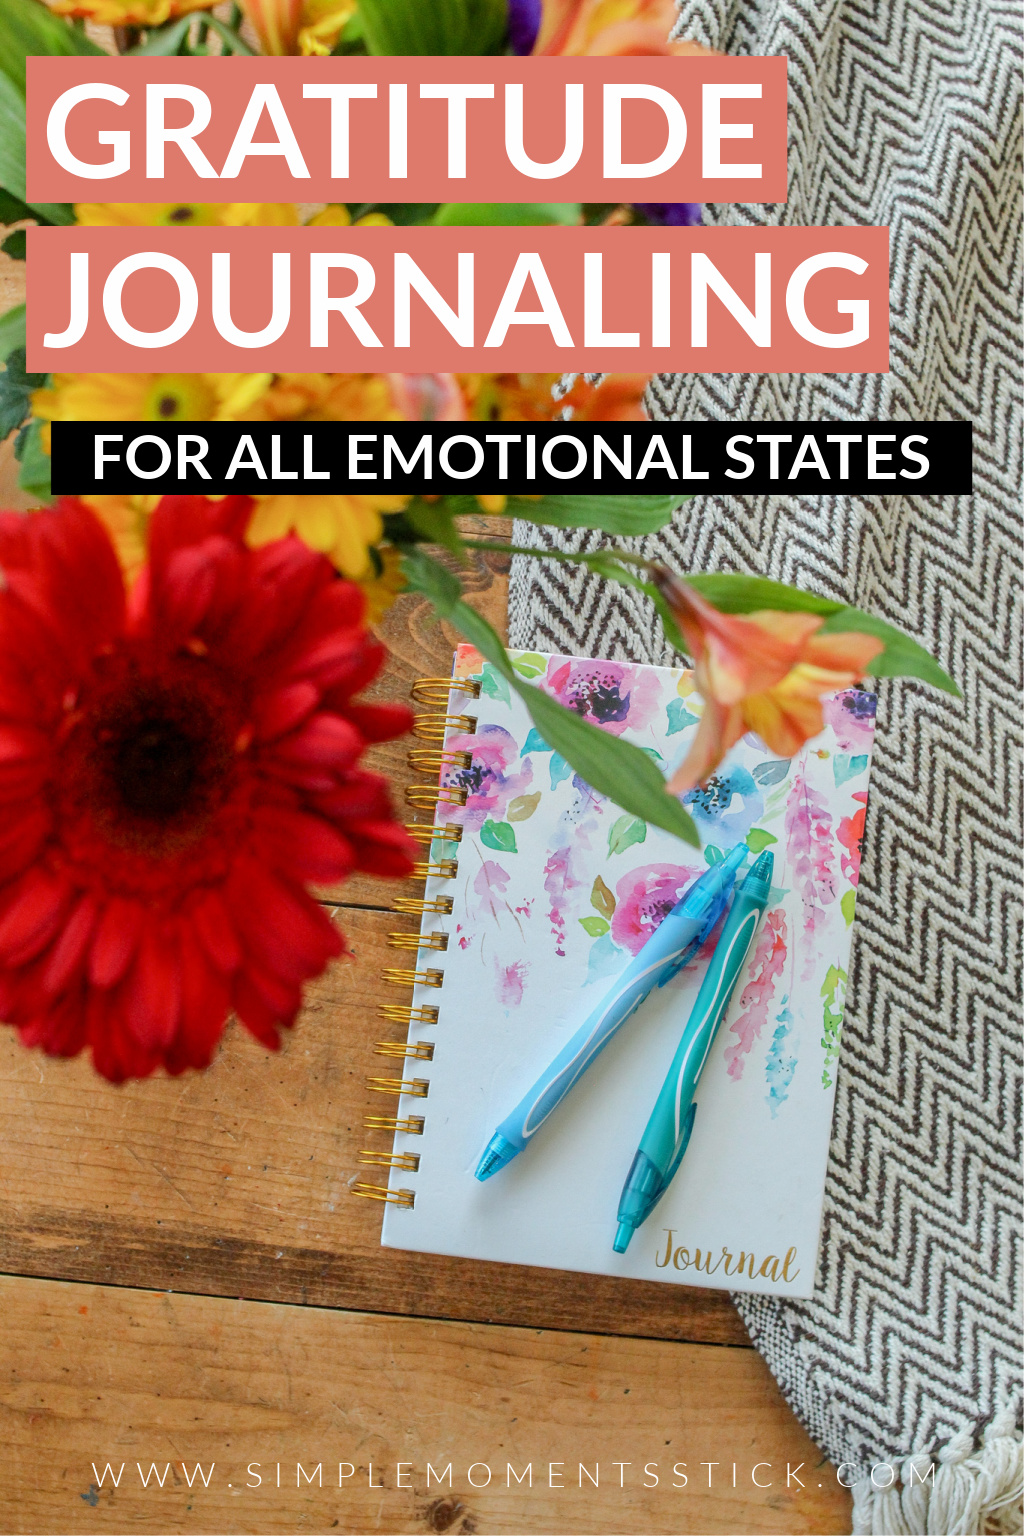 gratitude journaling for all emotional states